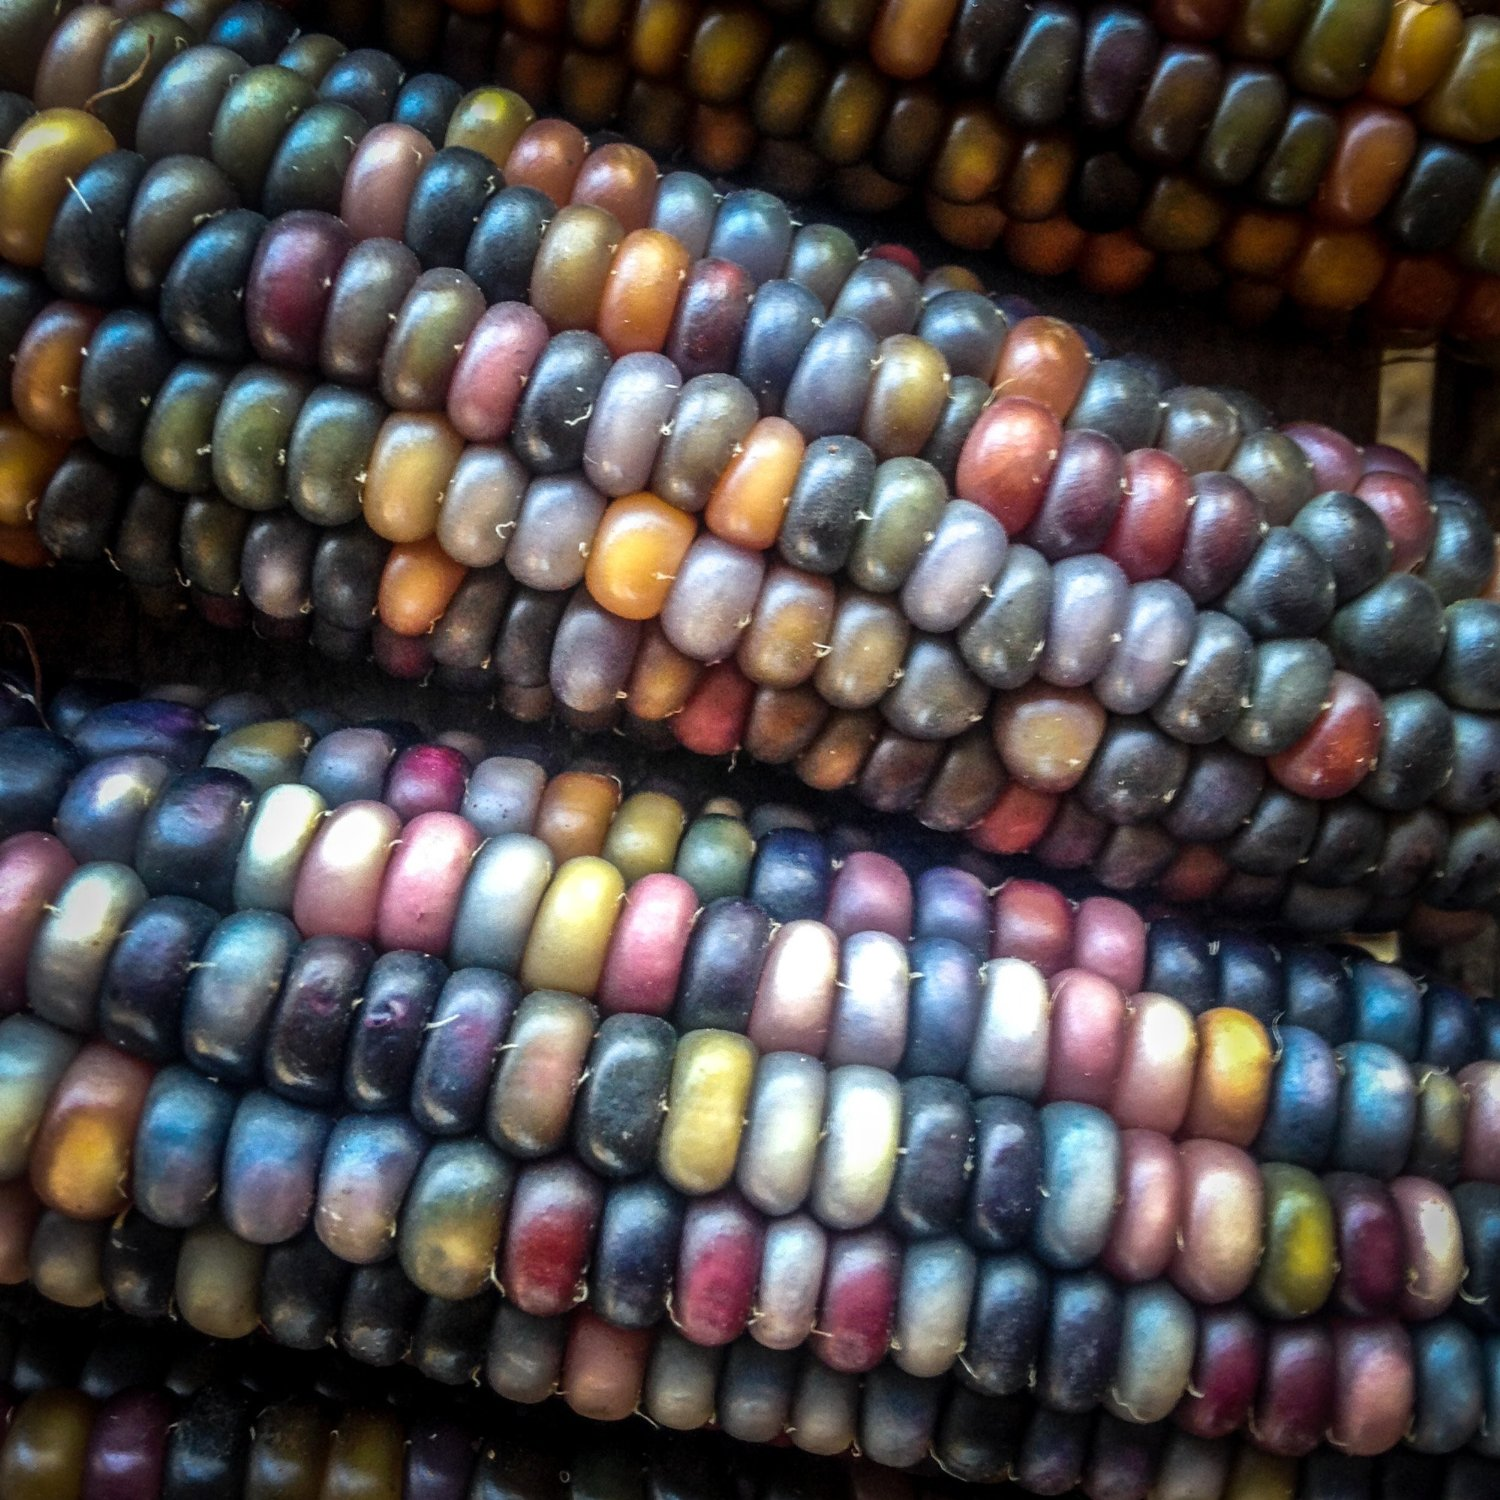 Amazon-com-Certified-Organic-Glass-Gem-Corn-seeds-Non-GMO-Open-Pollinated-Heirloom-Seed-P-wallpaper-wp3602417